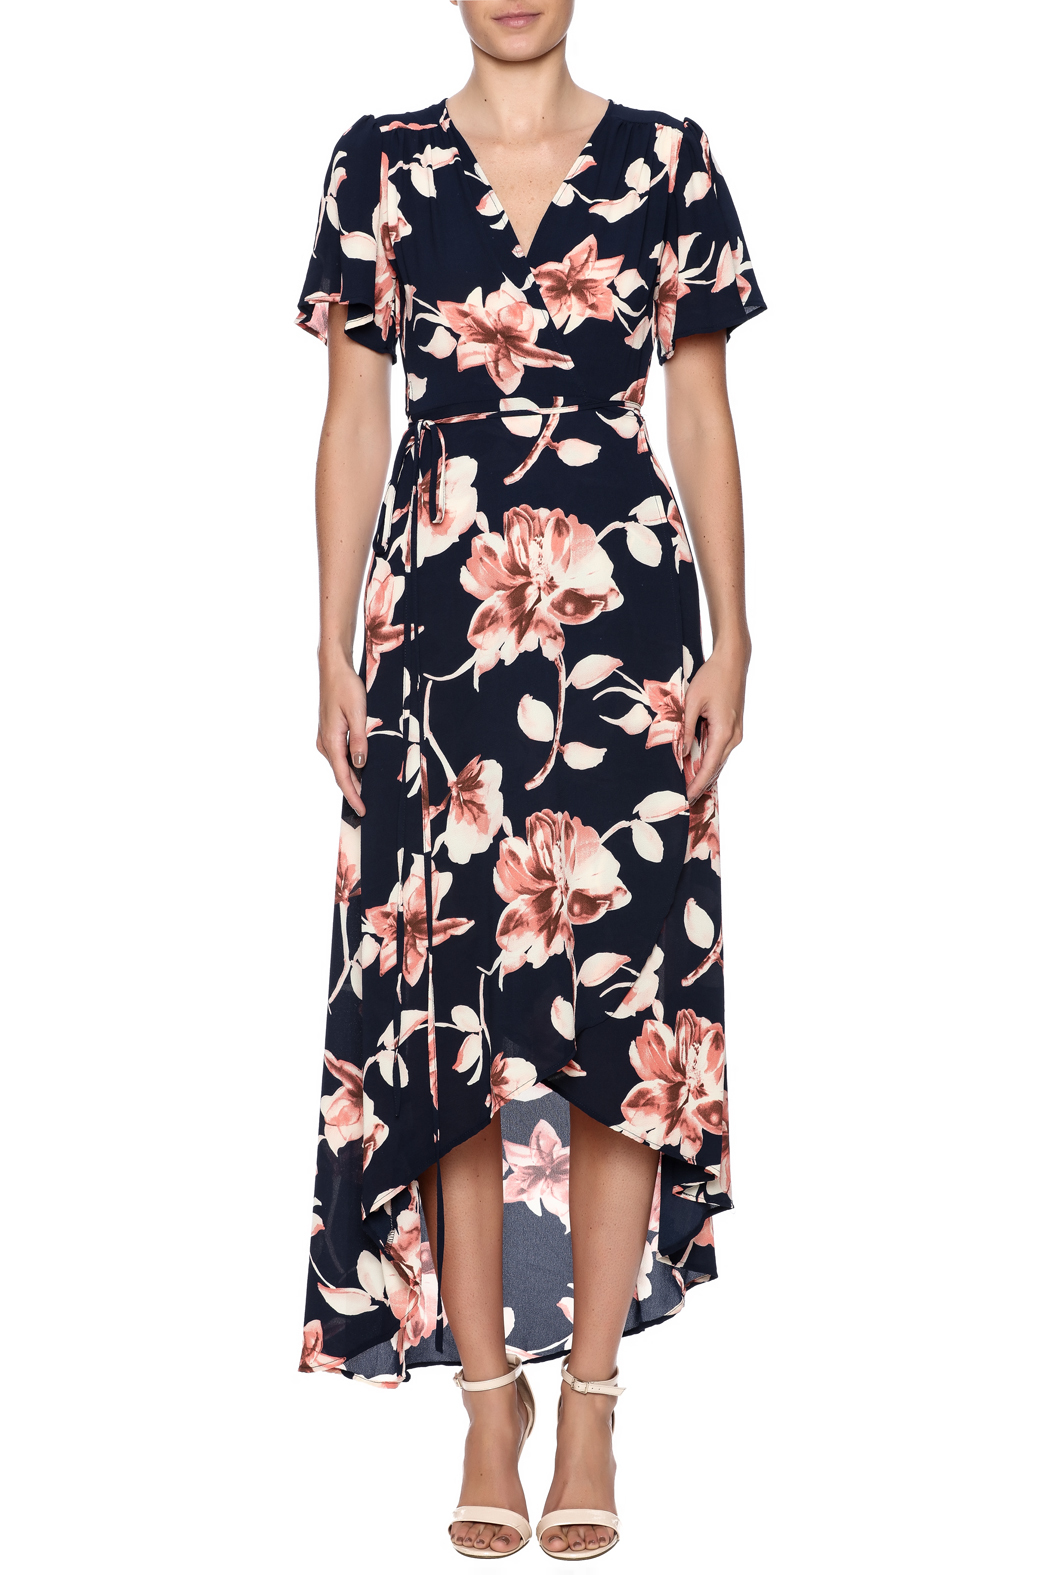 66111df6e8ab Peppermint Navy Floral Wrap Dress from New York by Dor L Dor ...